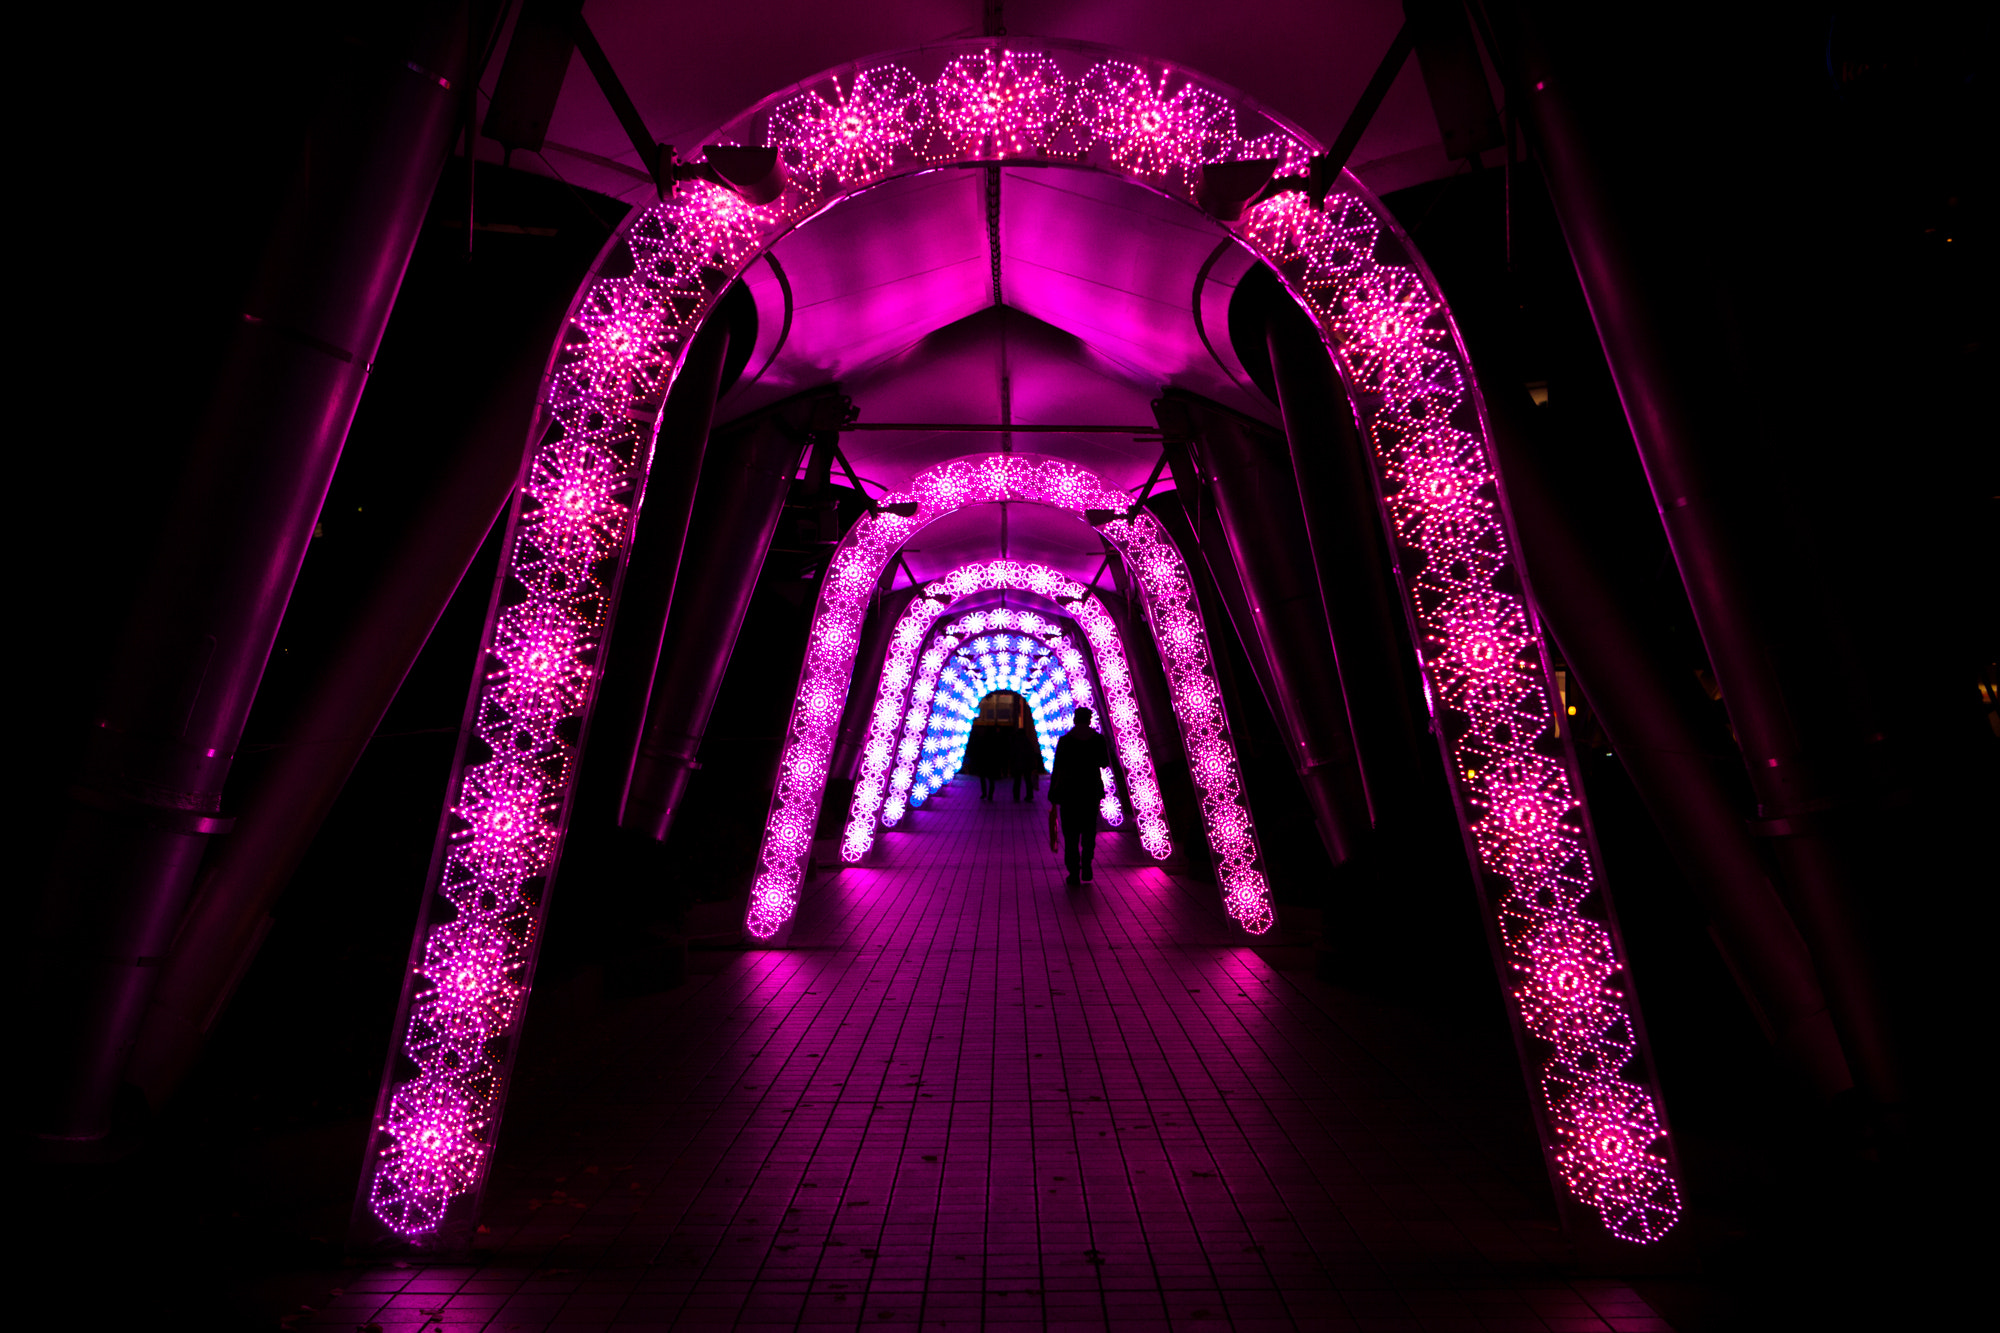 Photograph Light way by Structuresxx  on 500px